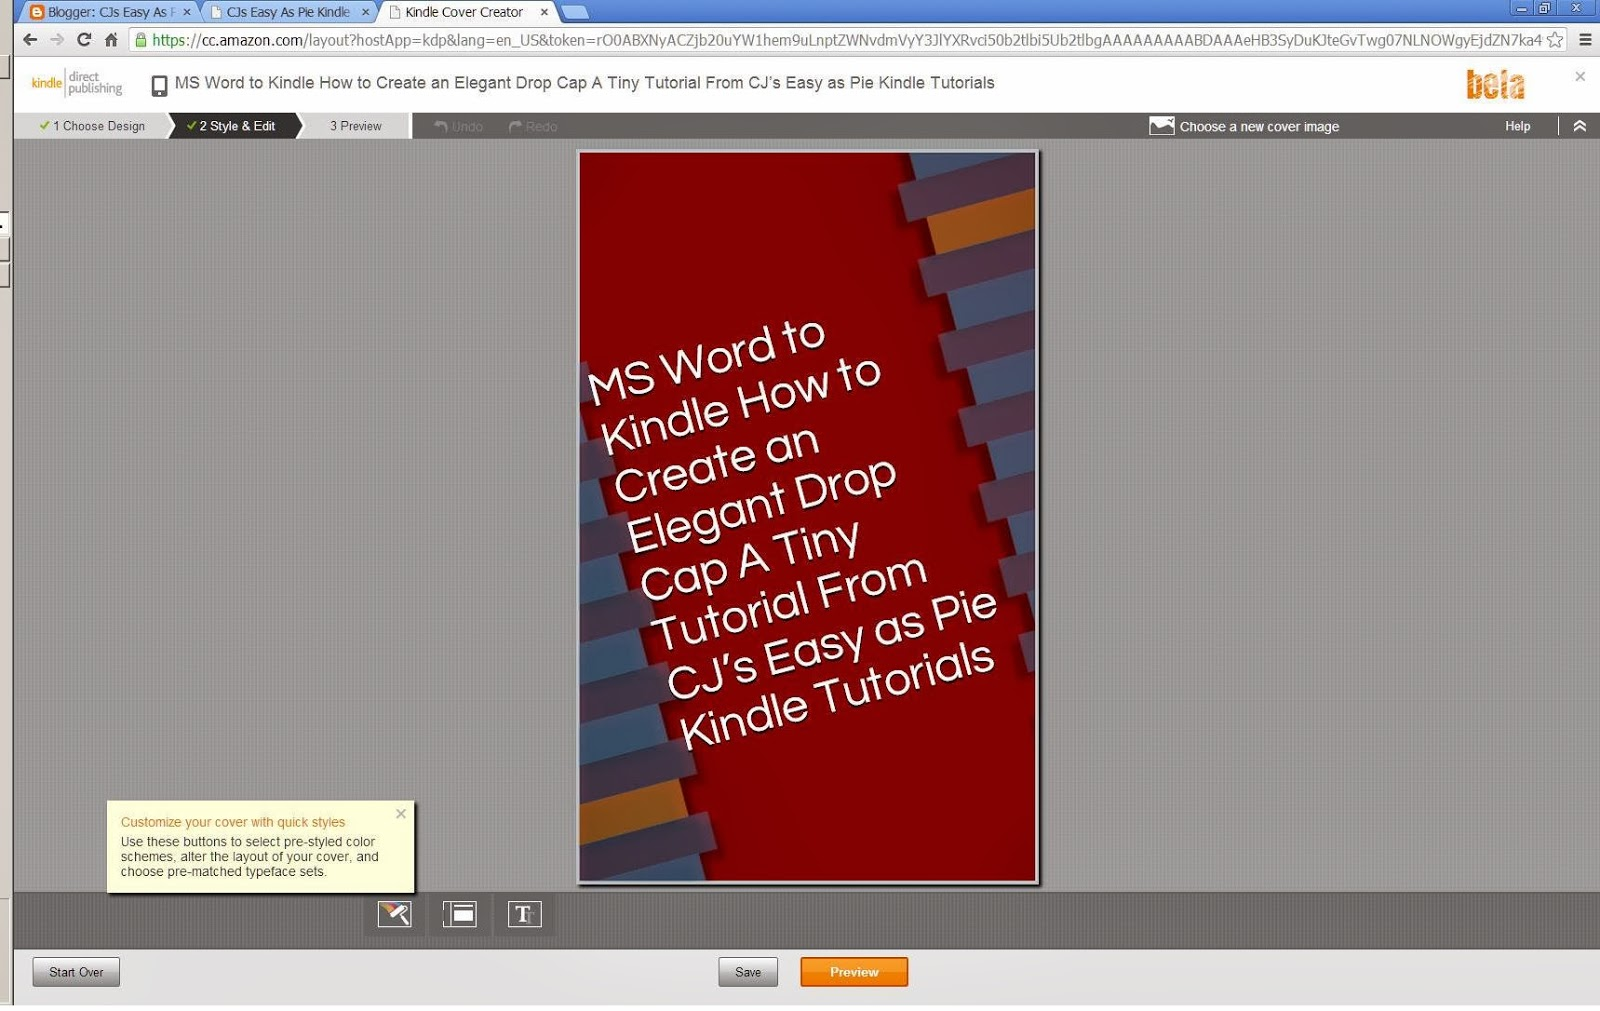 CJs Easy As Pie Kindle Tutorials: Create eBook Cover with Amazon